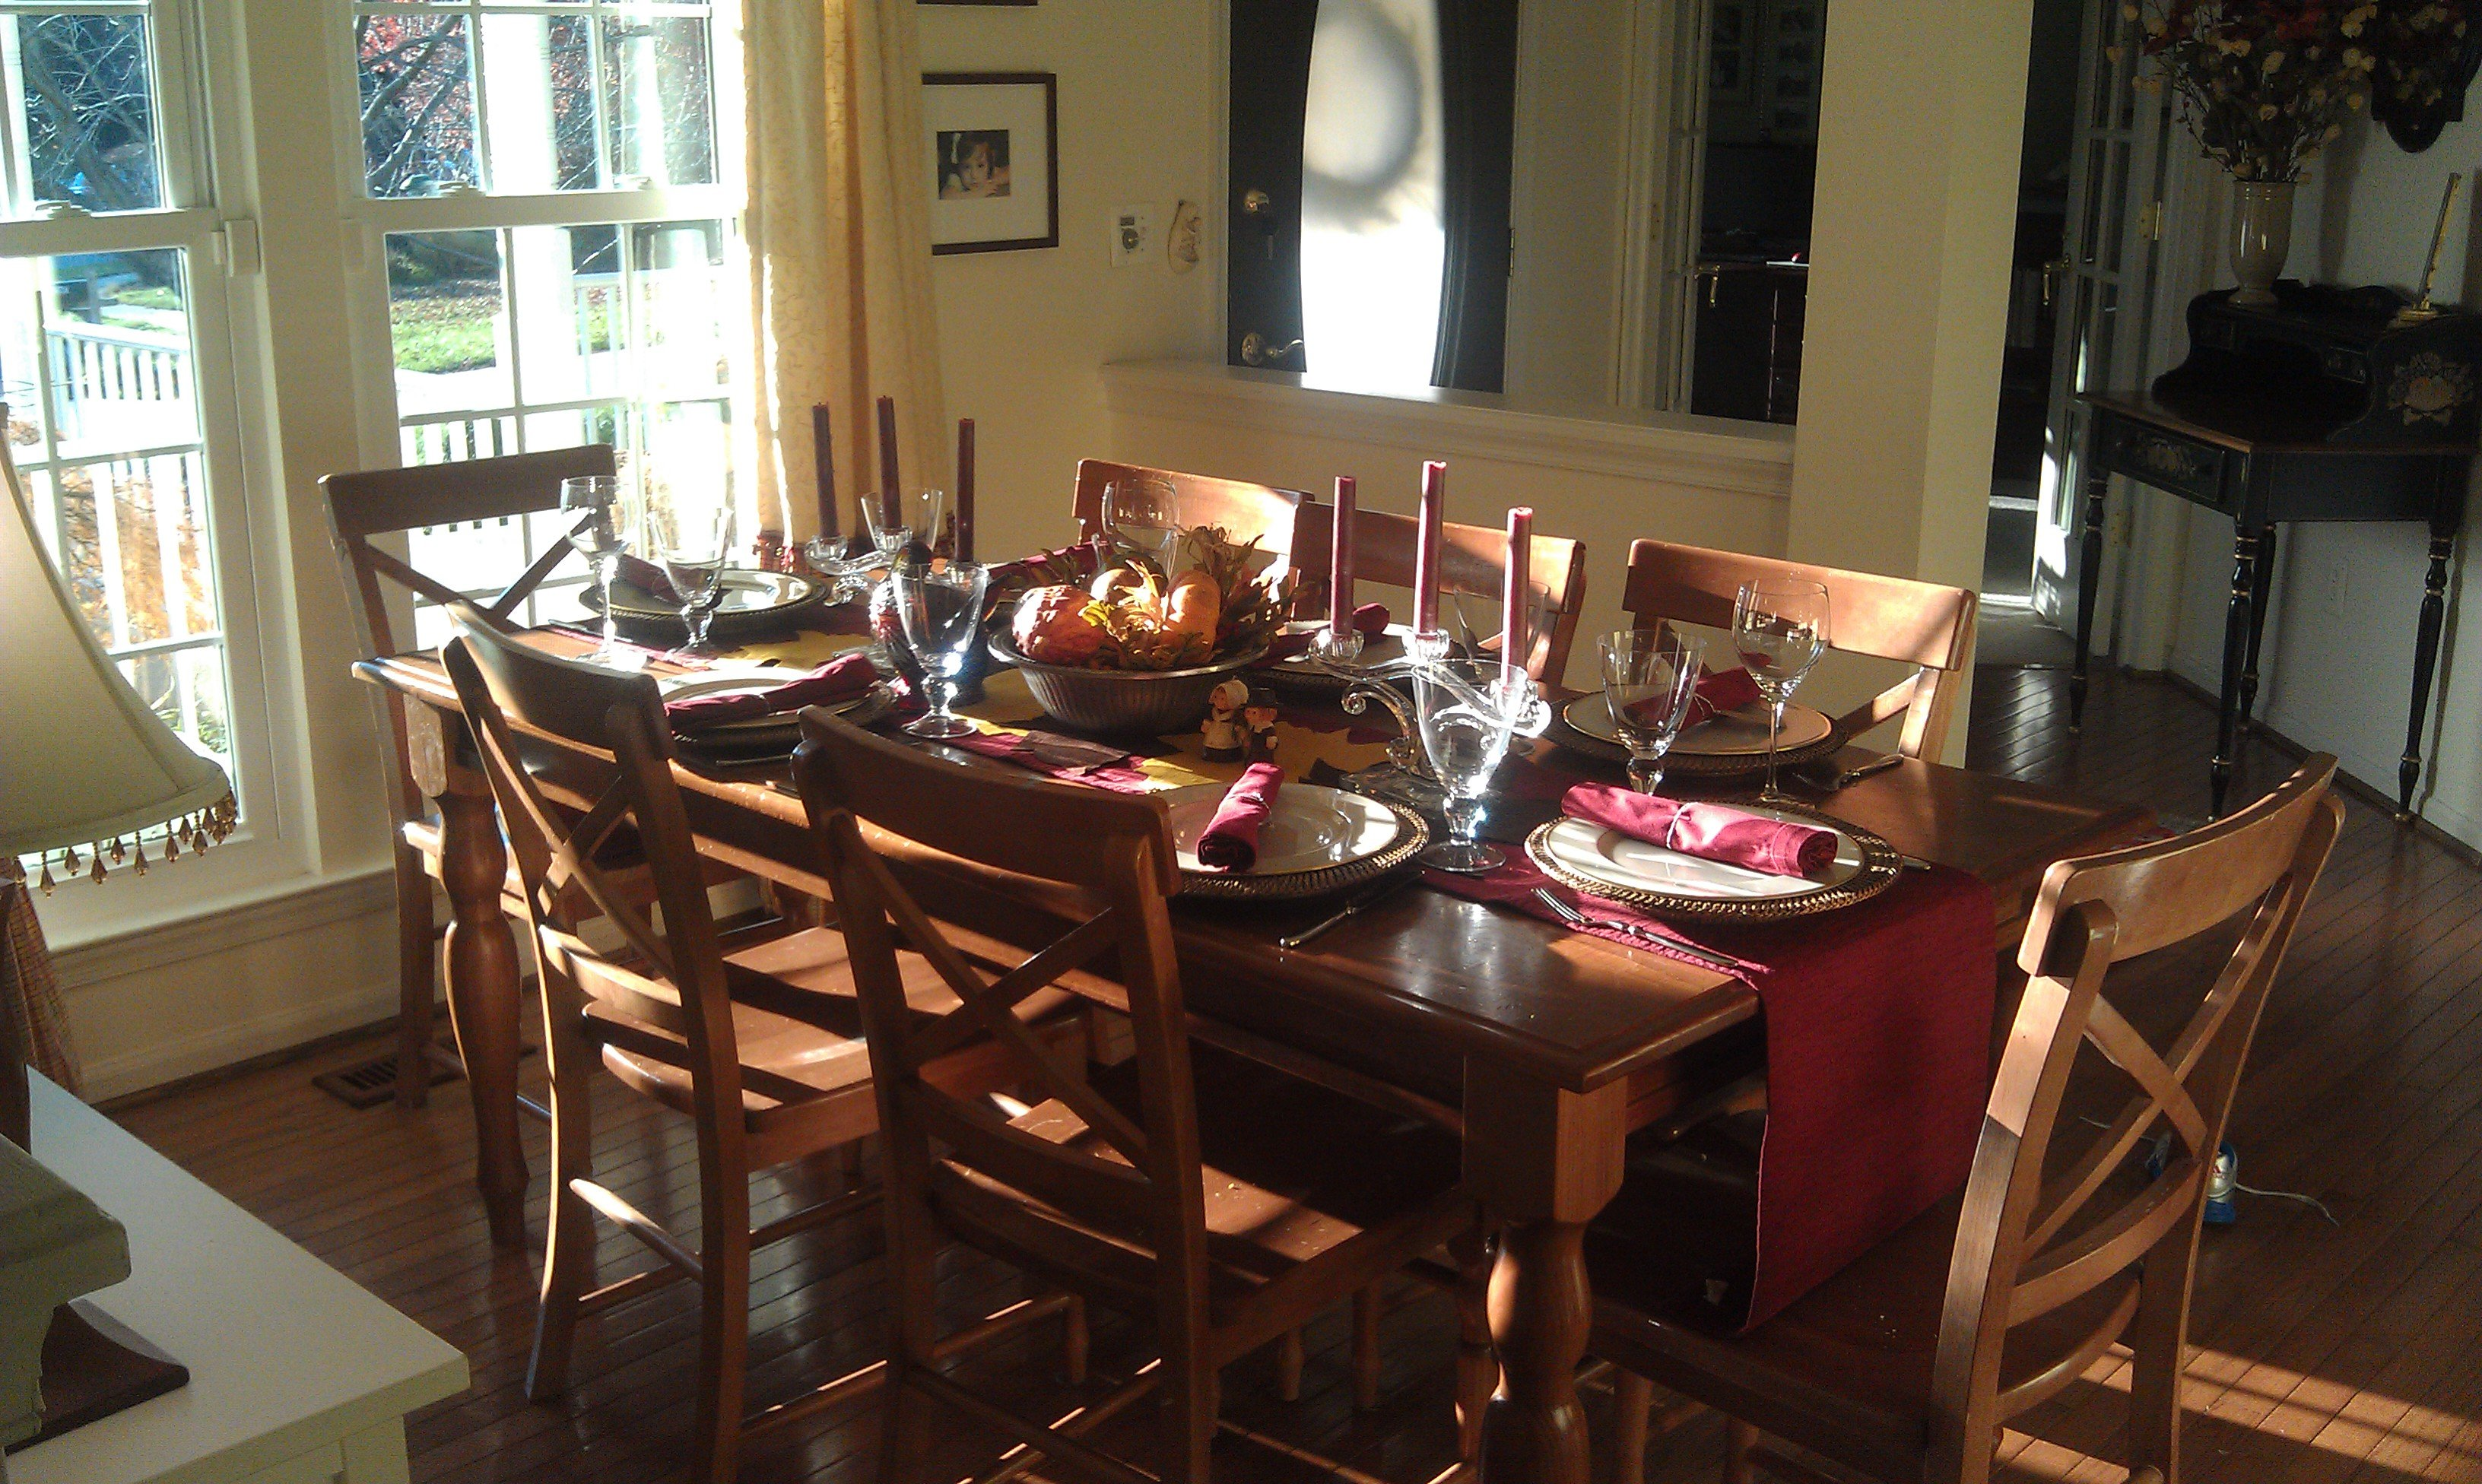 6 Last Minute Ways to Prepare Your Home for Thanksgiving